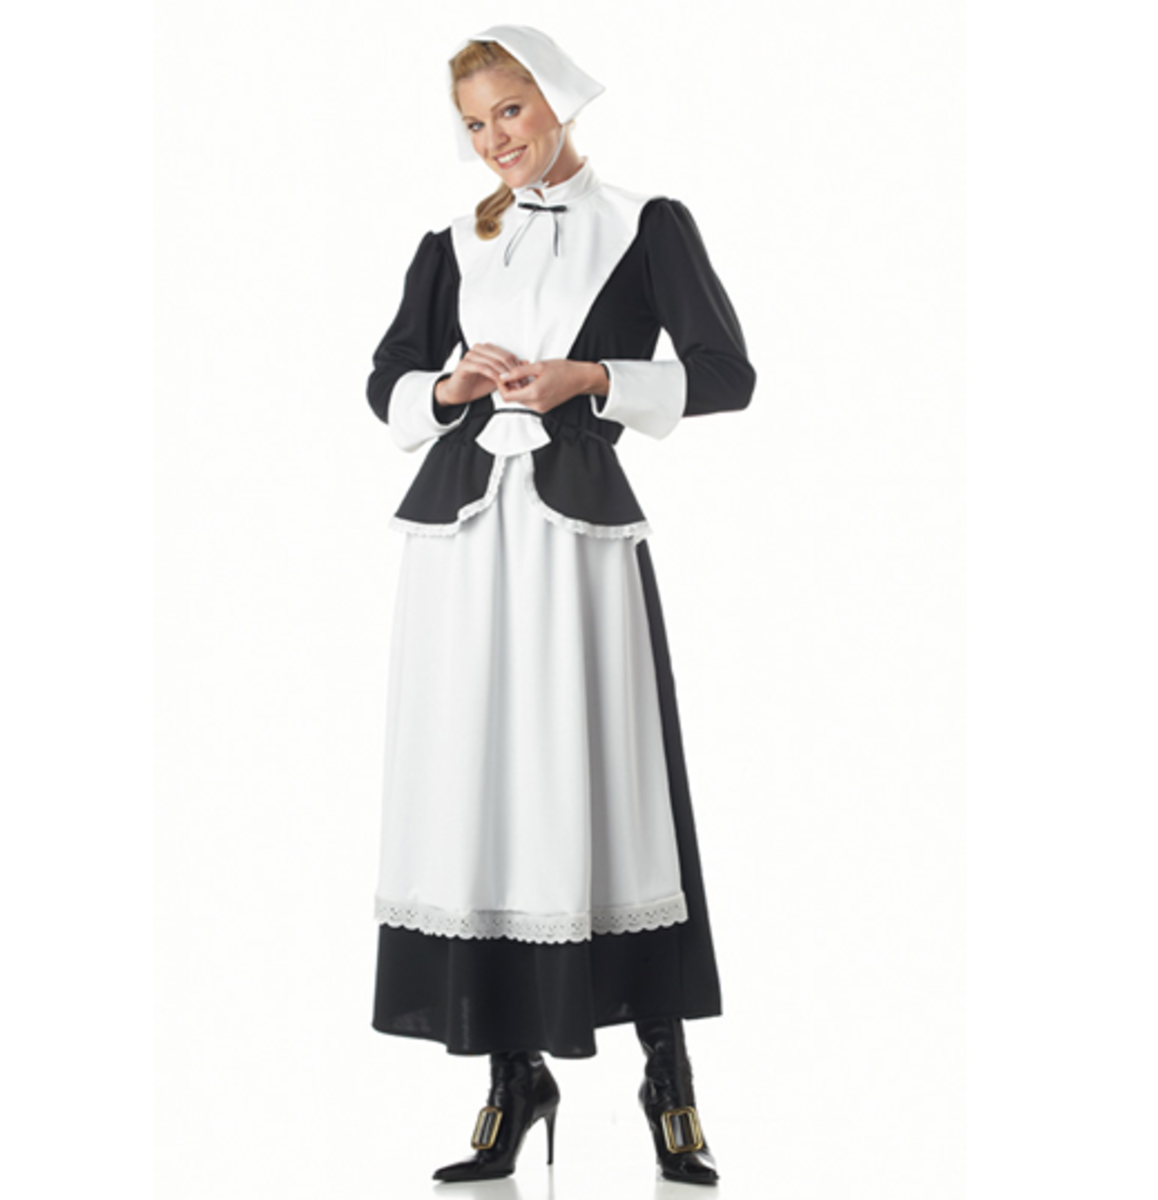 Woman's Pilgrim Costume